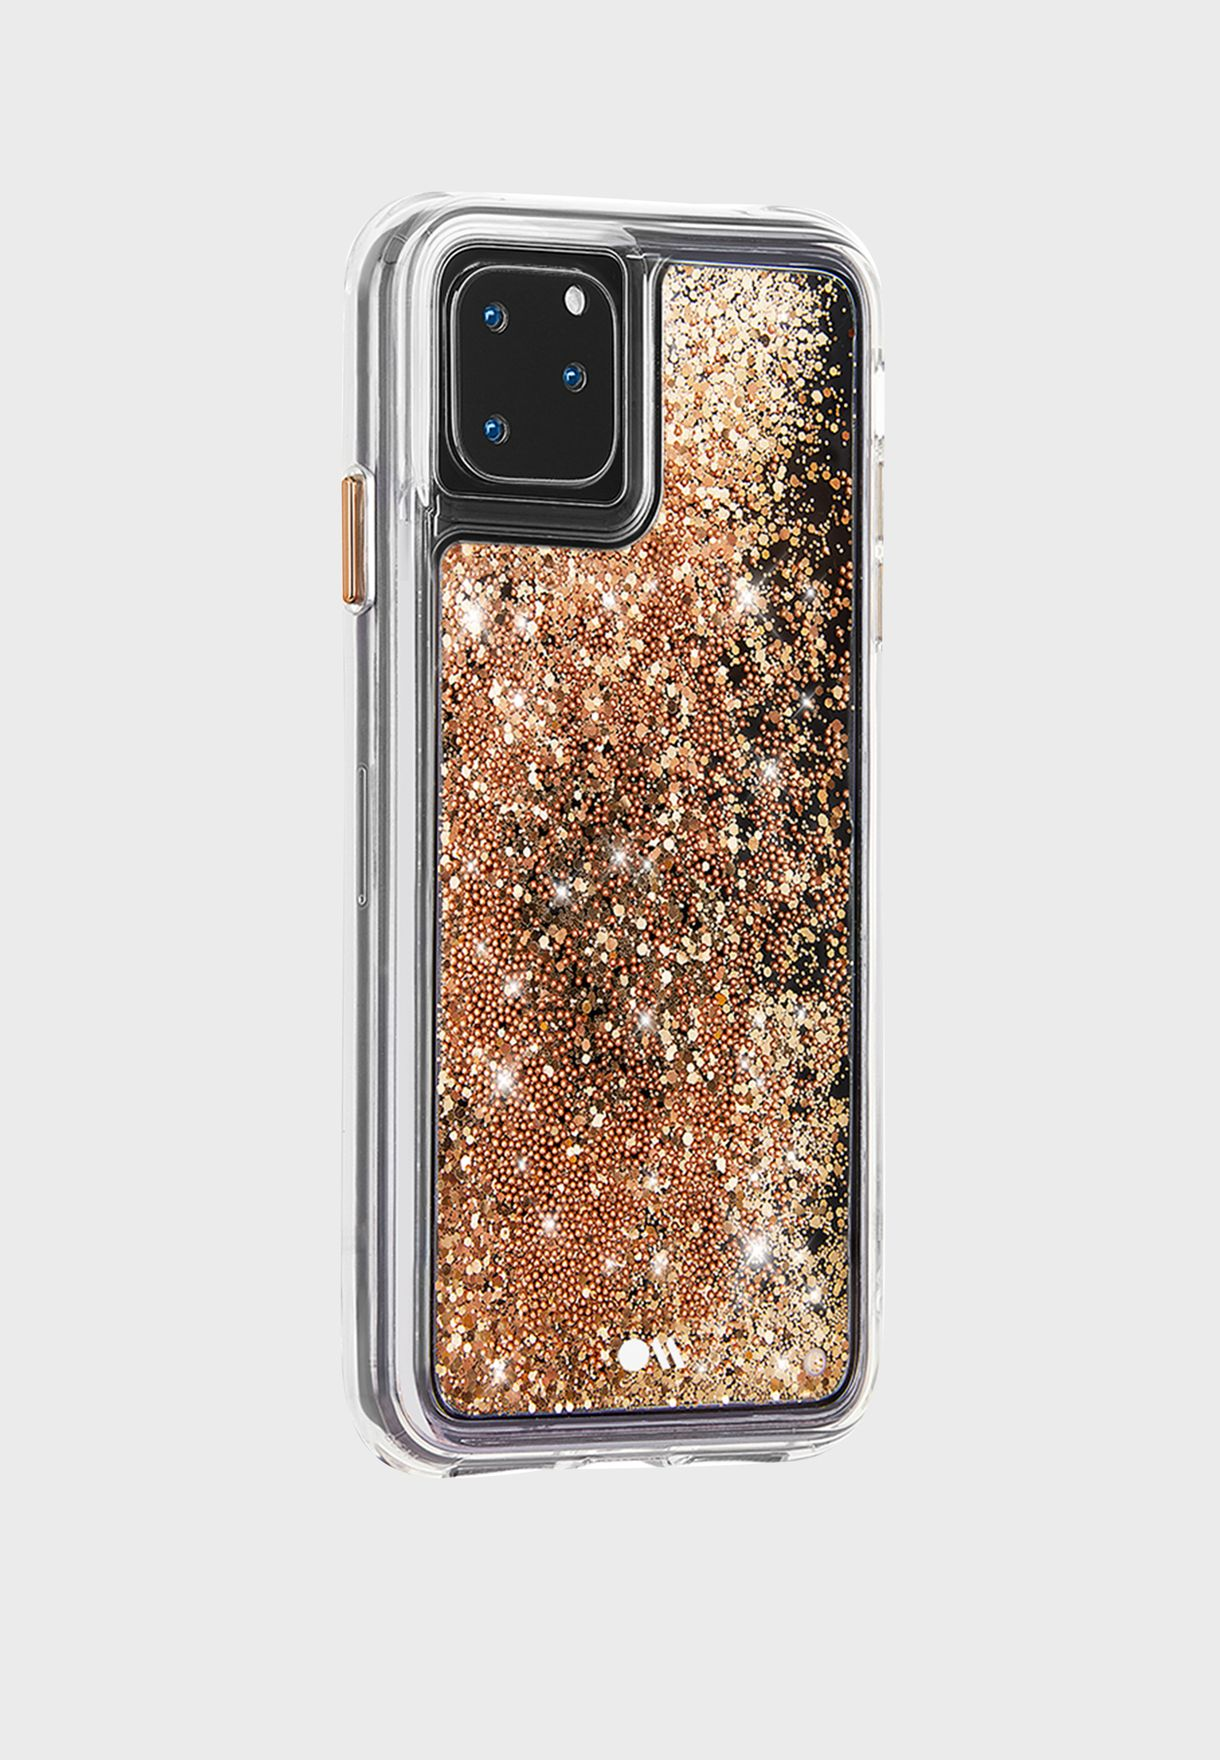 Waterfall Glitter iPhone iPhone 11/11 Pro/11 Pro Max Case